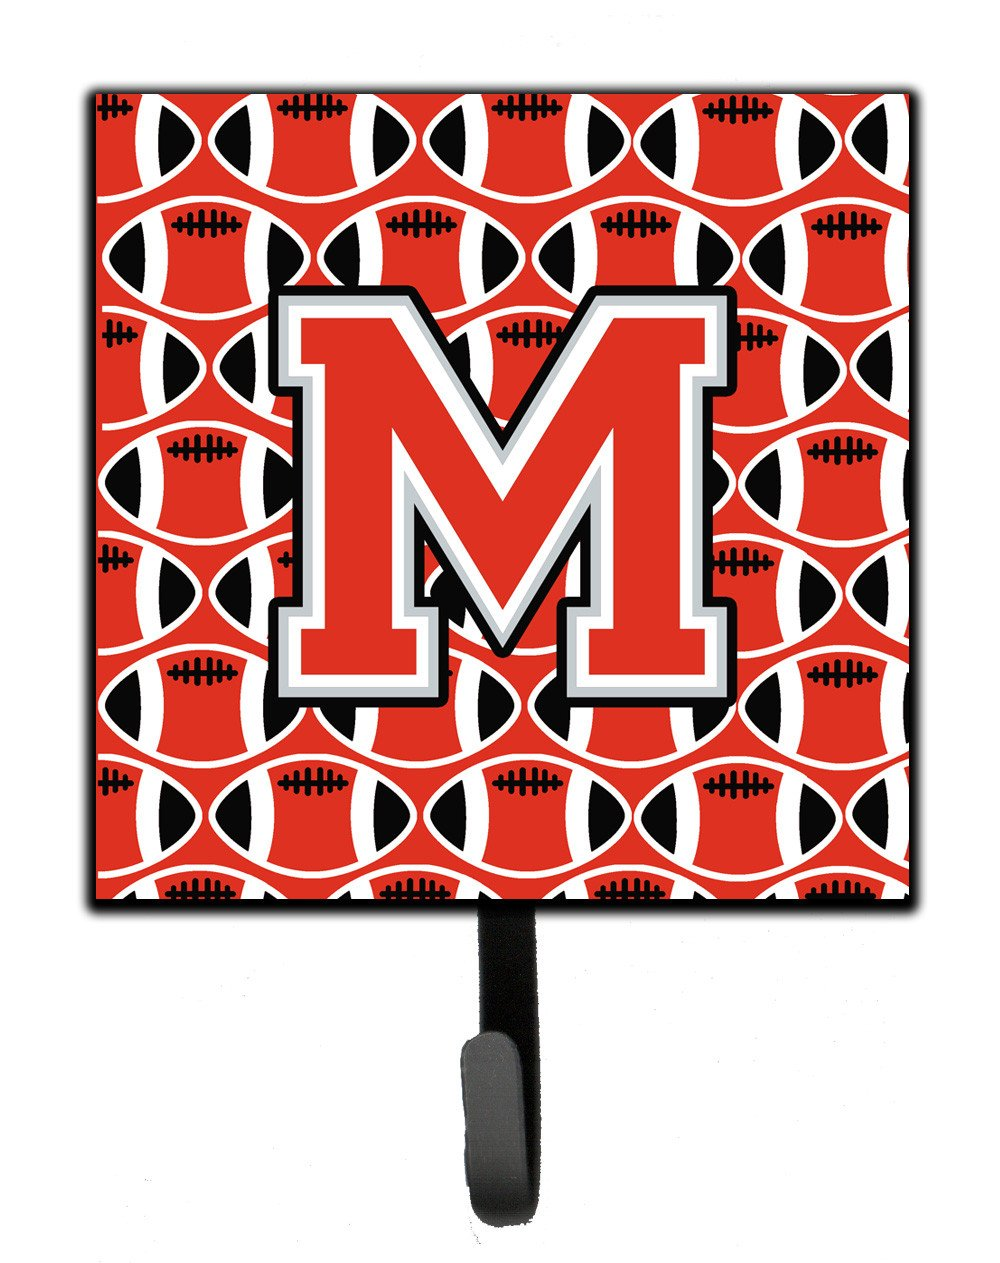 Letter M Football Scarlet and Grey Leash or Key Holder CJ1067-MSH4 by Caroline's Treasures